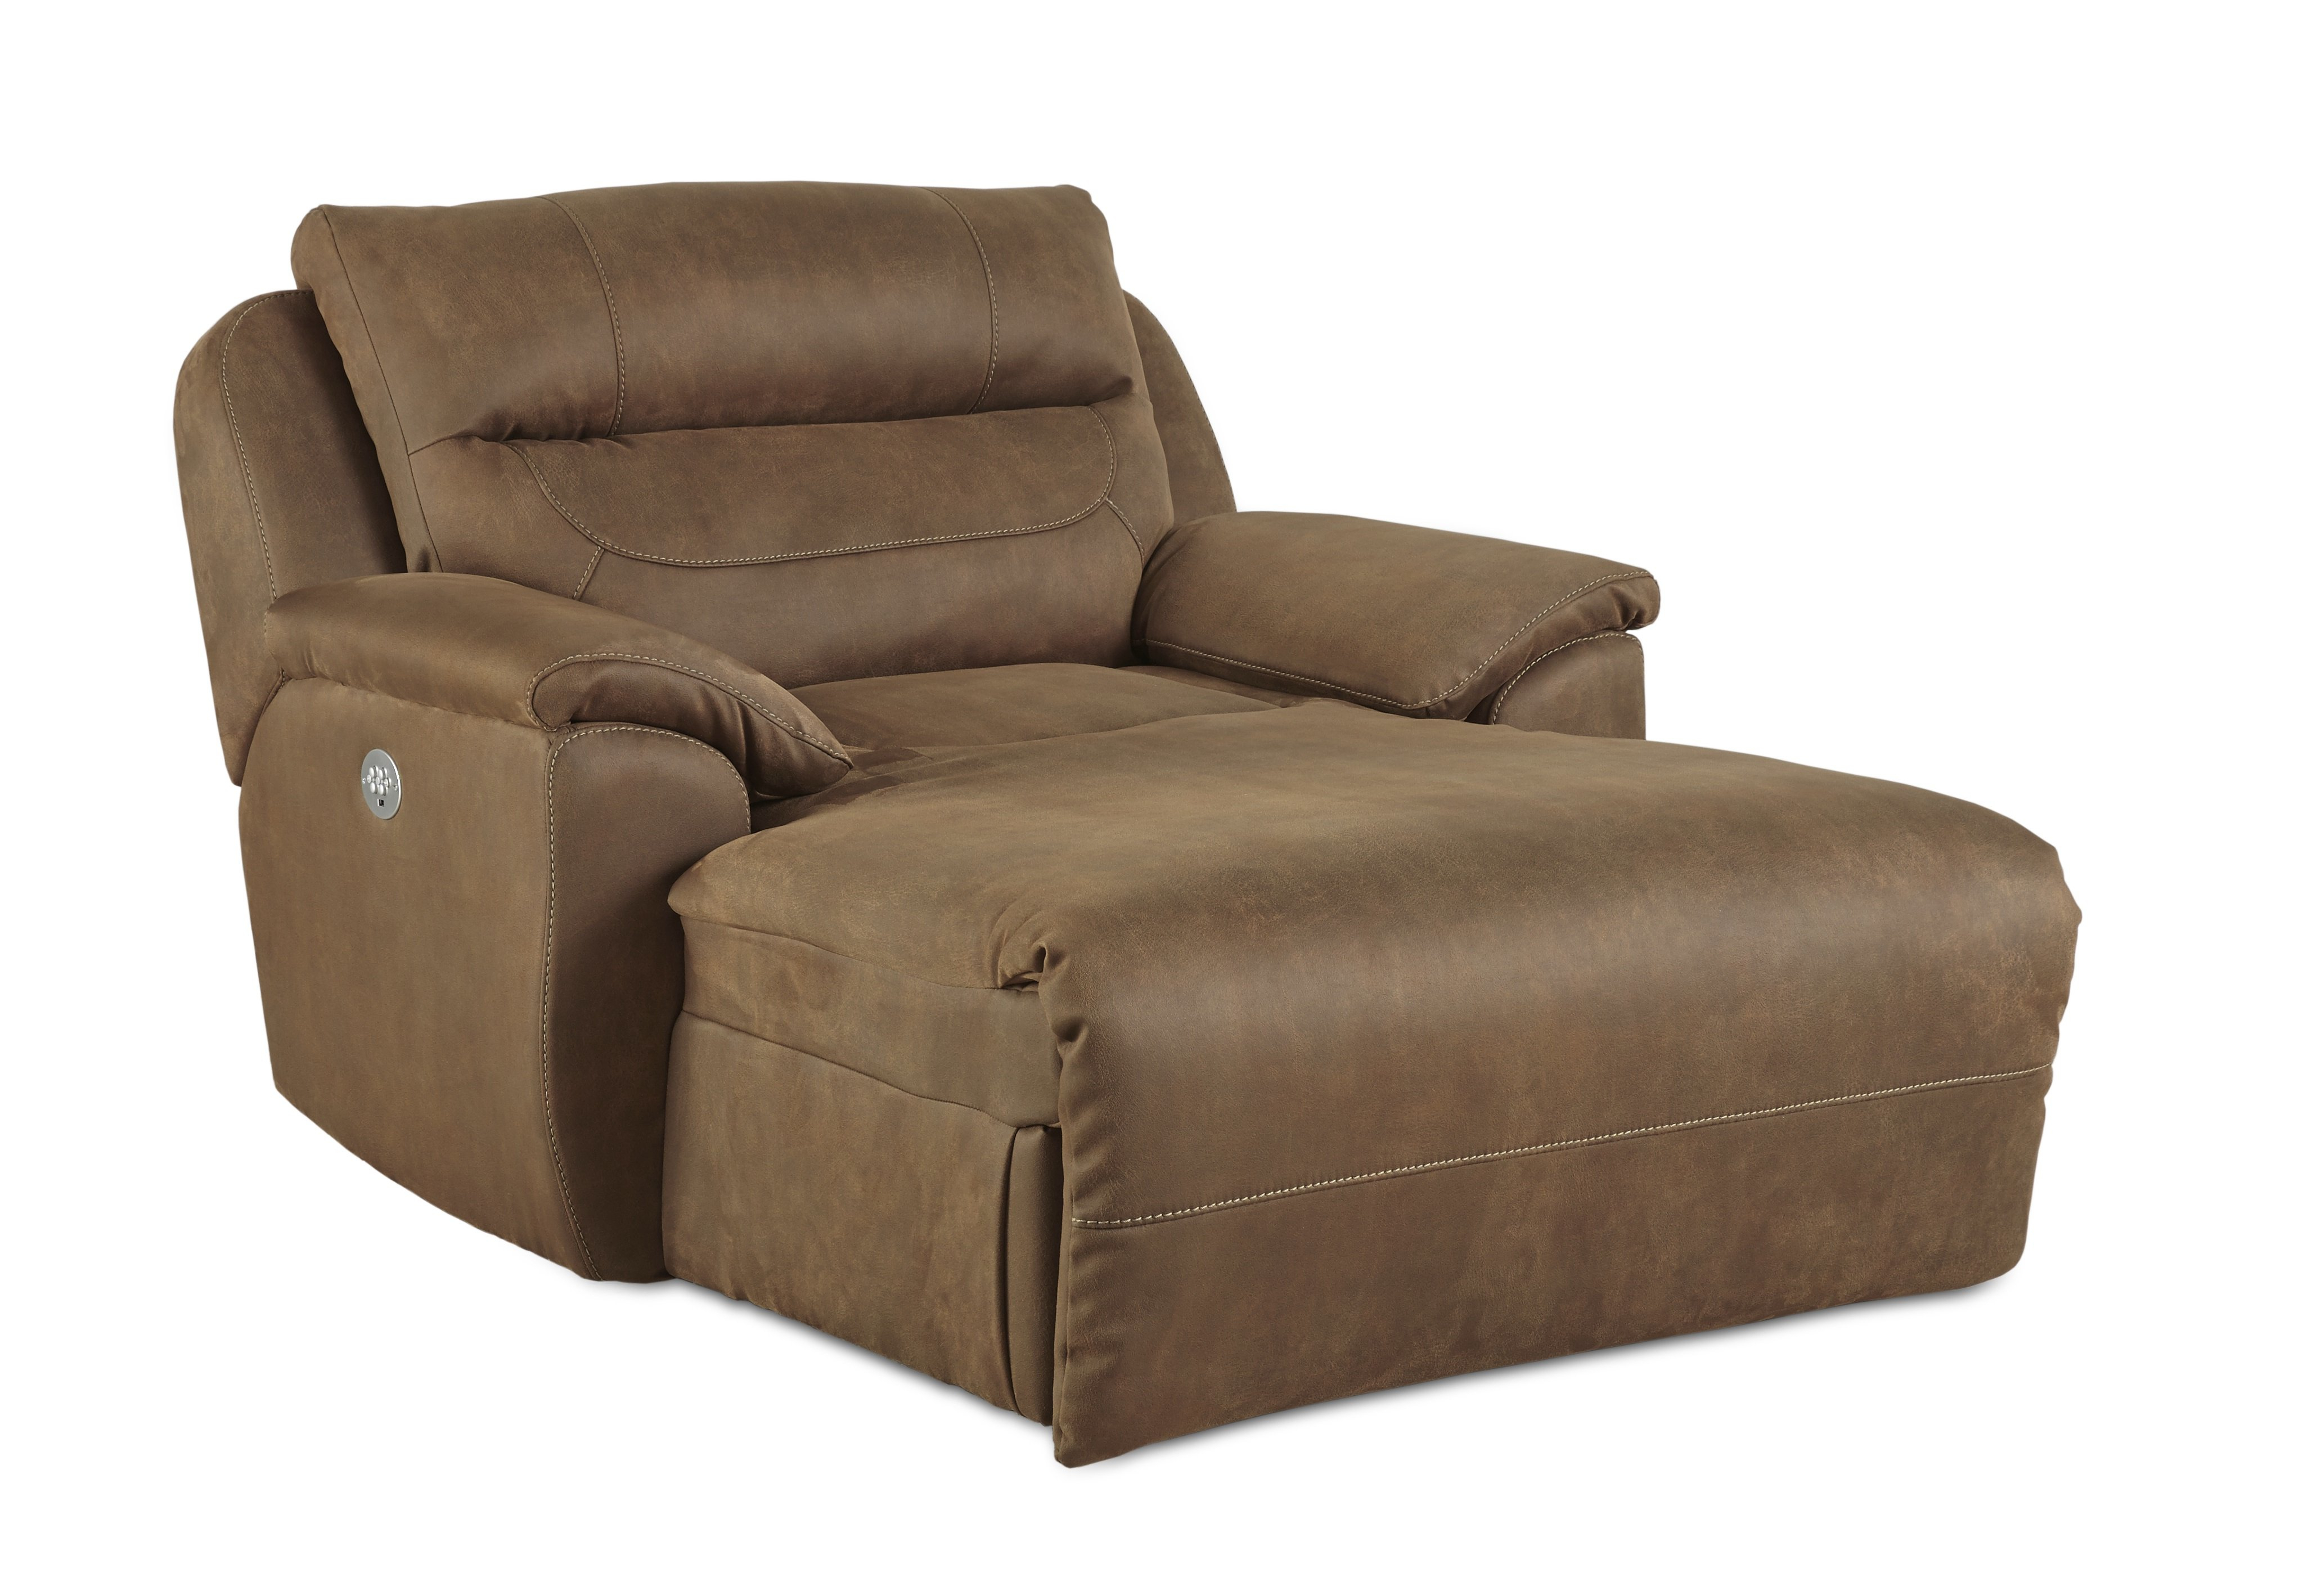 Southern Motion | Wayfair For Hercules Chocolate Swivel Glider Recliners (View 22 of 25)